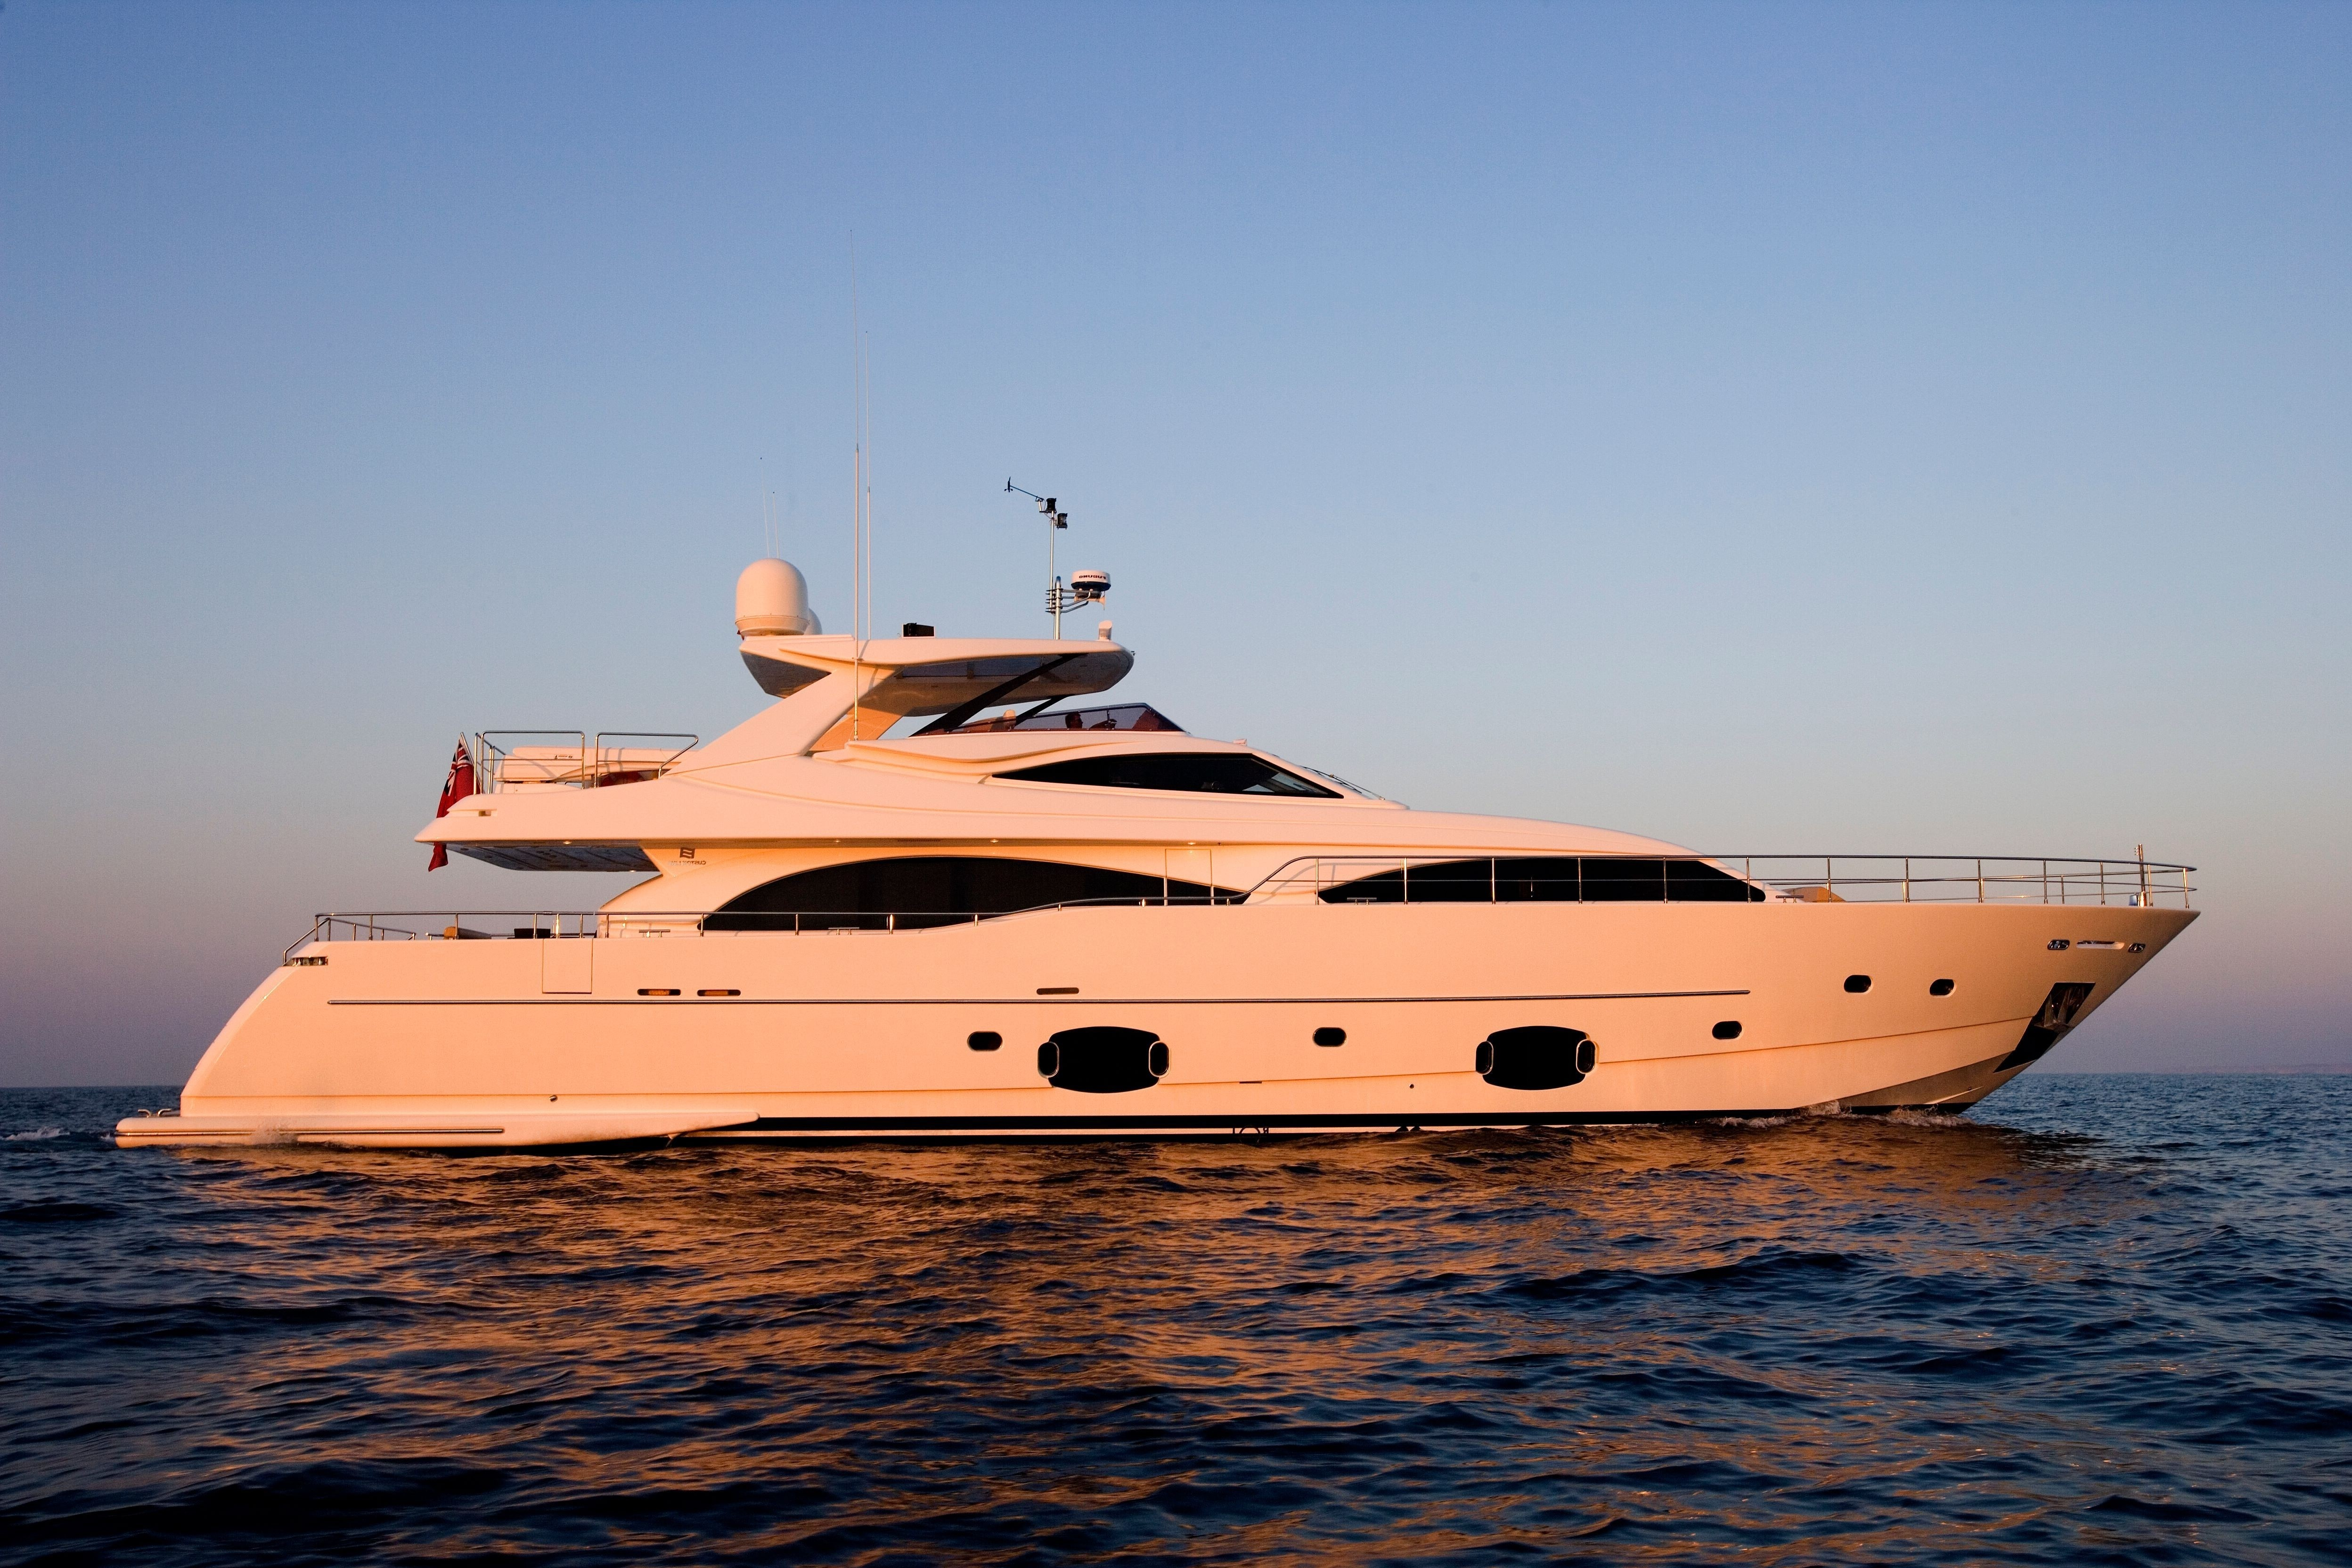 The 29m Yacht PERPETUAL